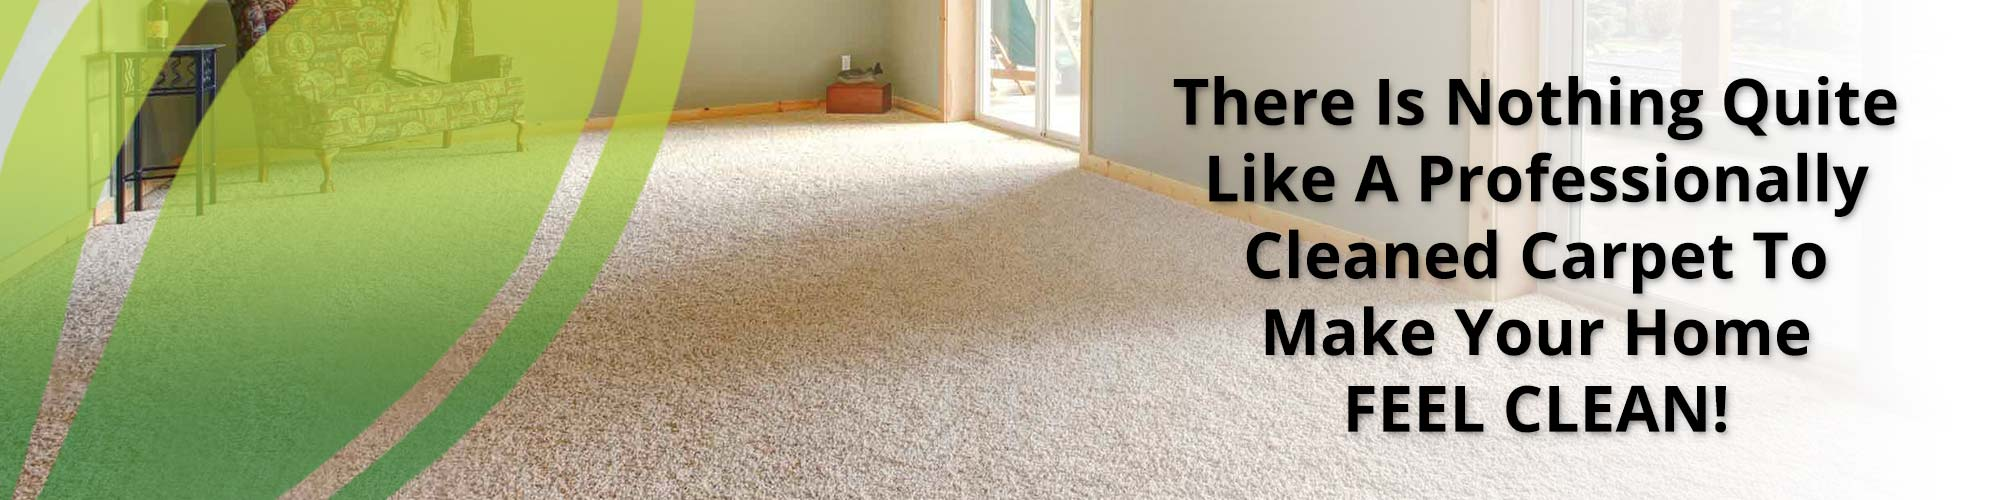 Carpet Cleaning Carpet Cleaning Carpet Cleaner Brighton Acme Carpet Cleaning Co